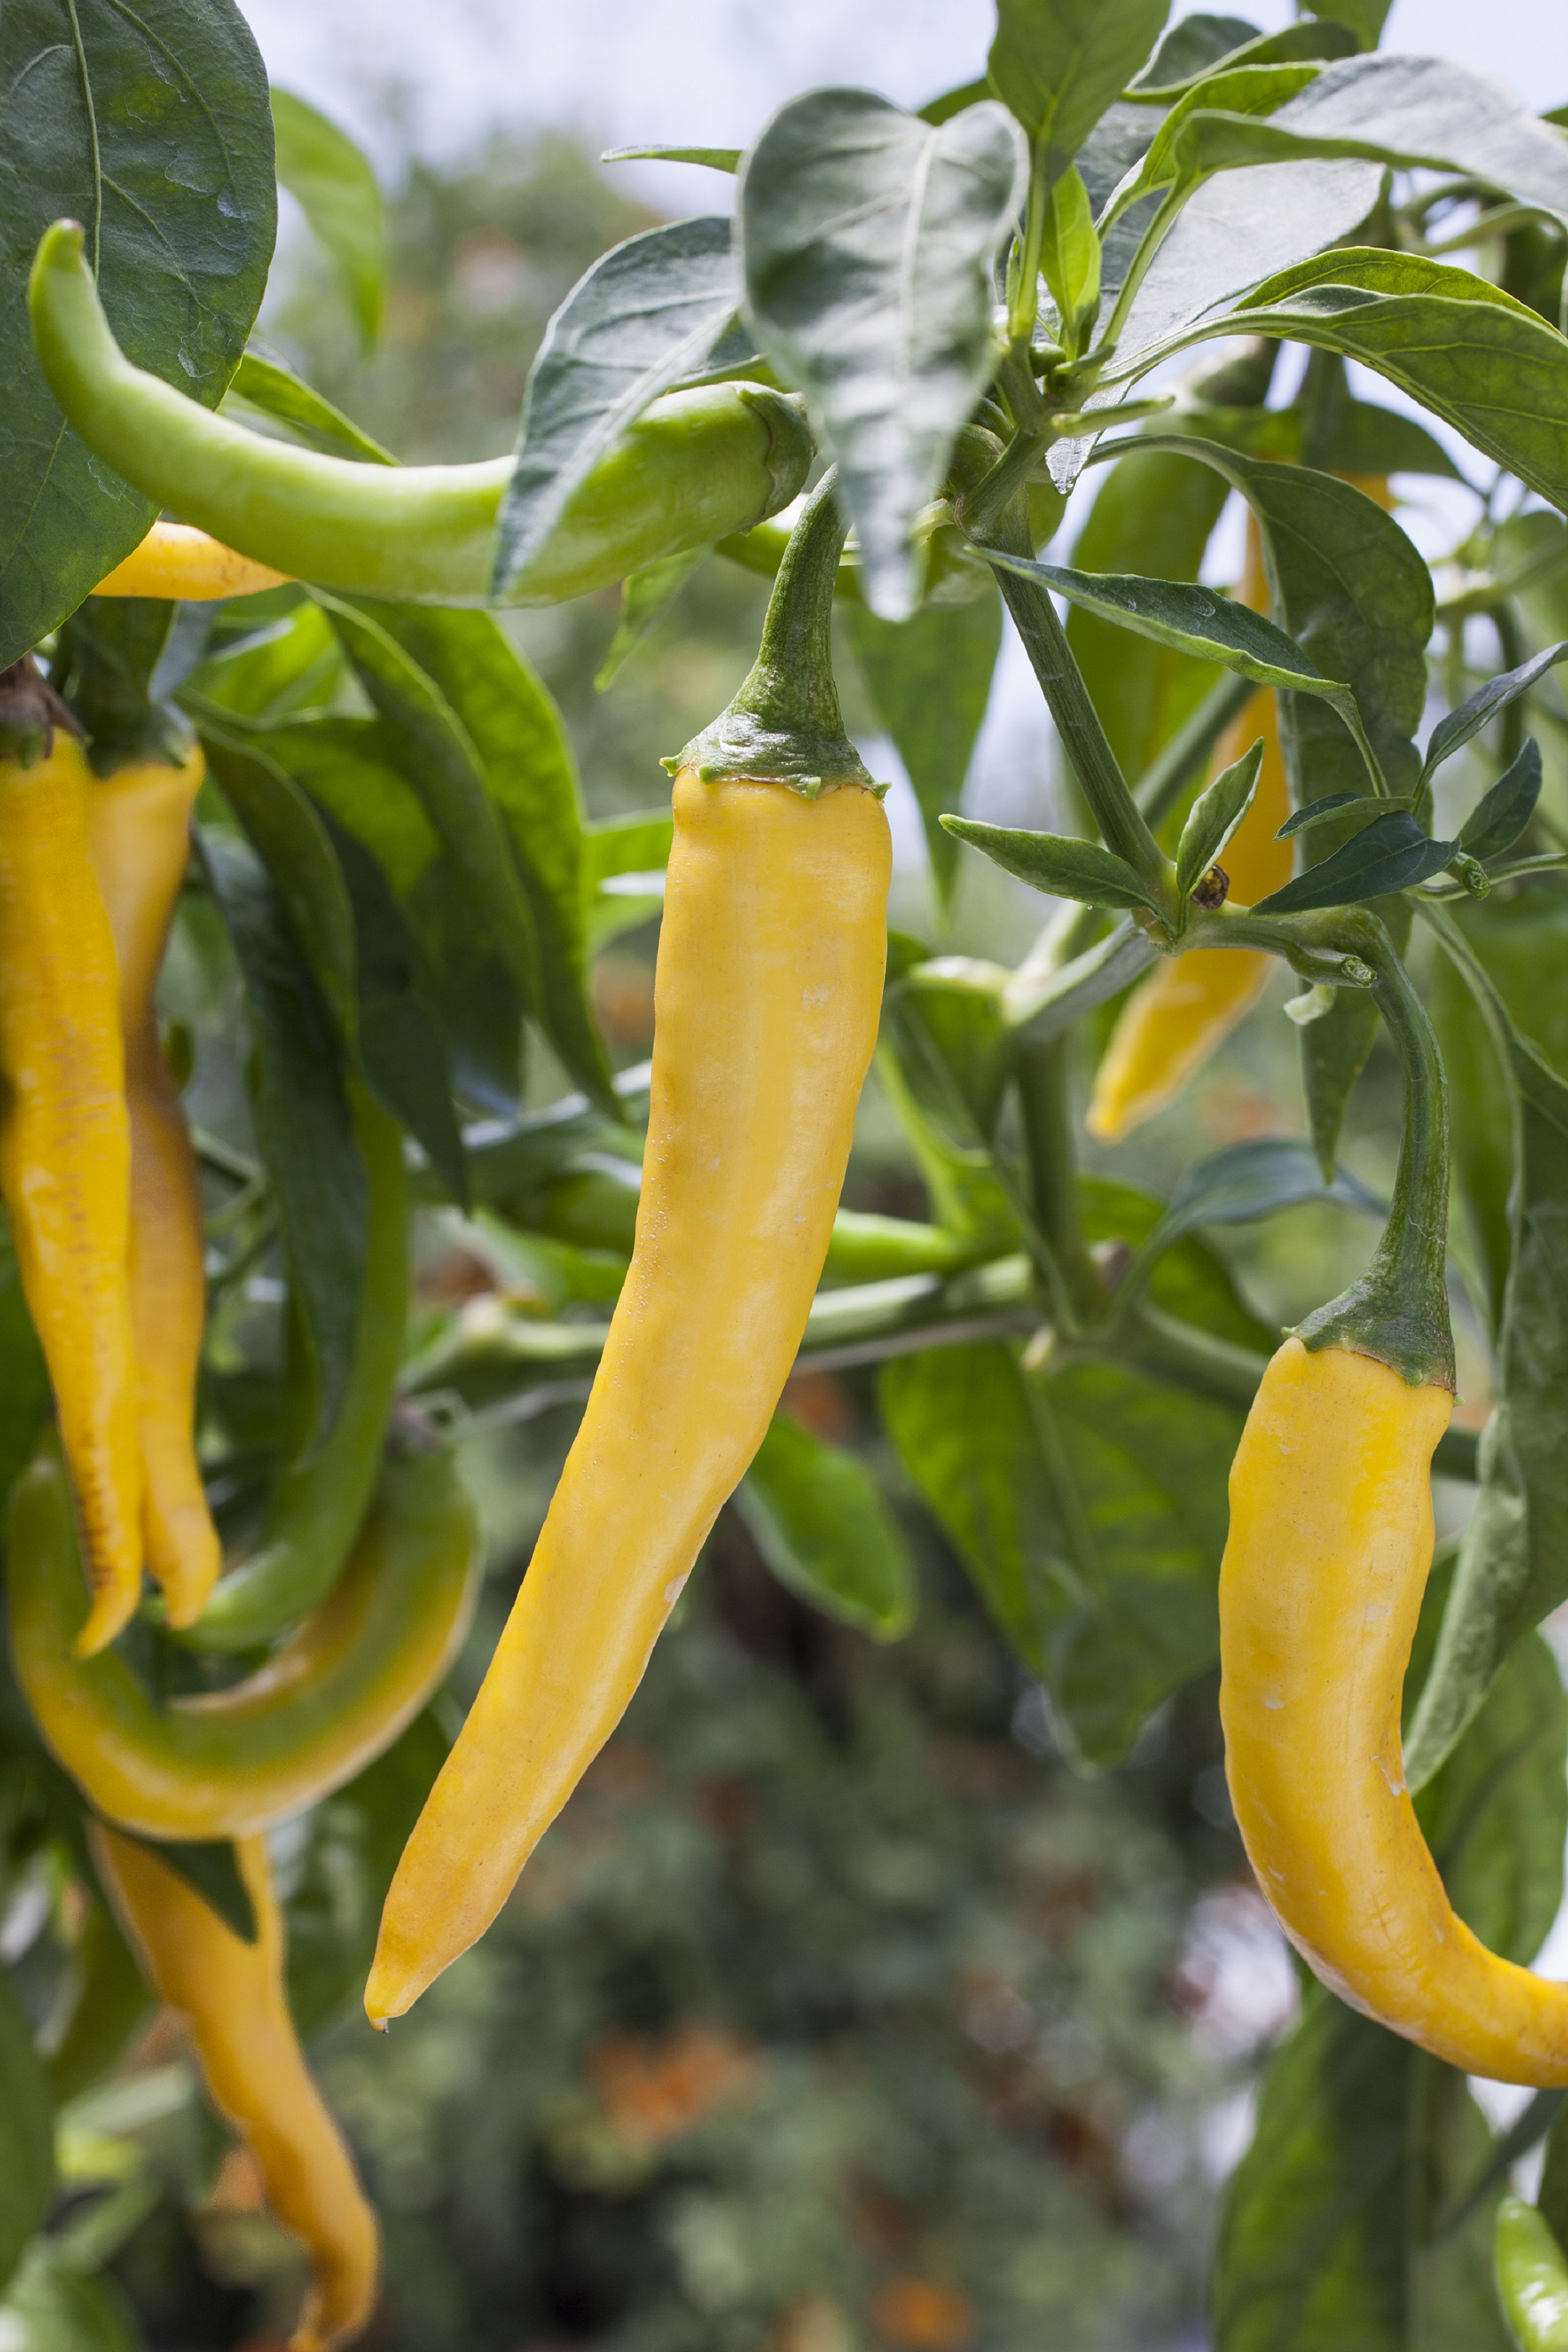 Golden cayenne peppers